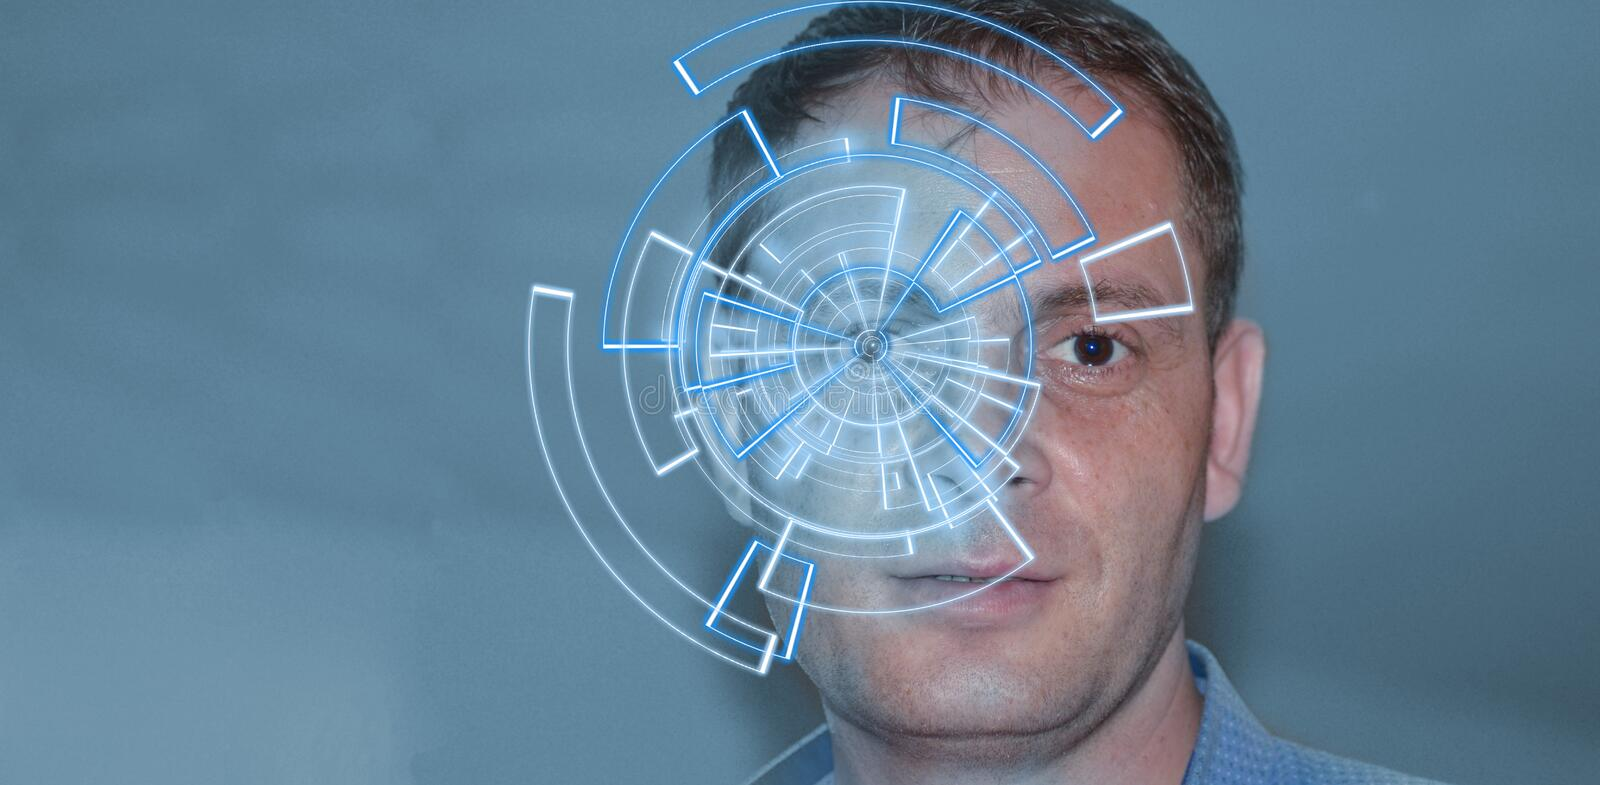 Portrait of handsome man with tech pattern on eye. Digital ID concept, eye recognition stock photo